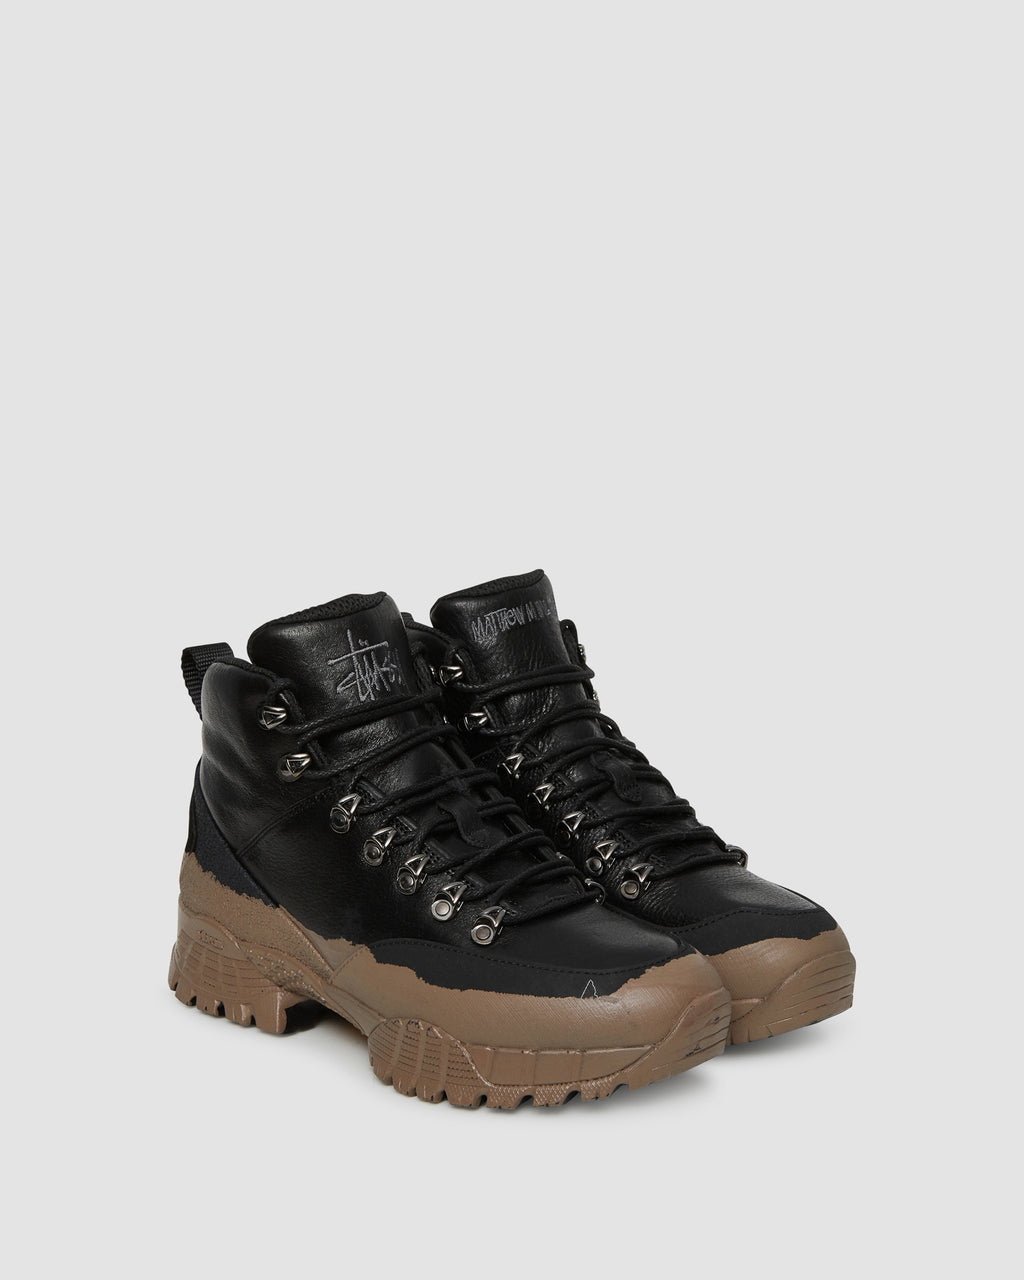 1017 ALYX 9SM | STUSSY HIKING BOOT | Shoe | Black, F19, Man, Shoes, STUSSY, Woman